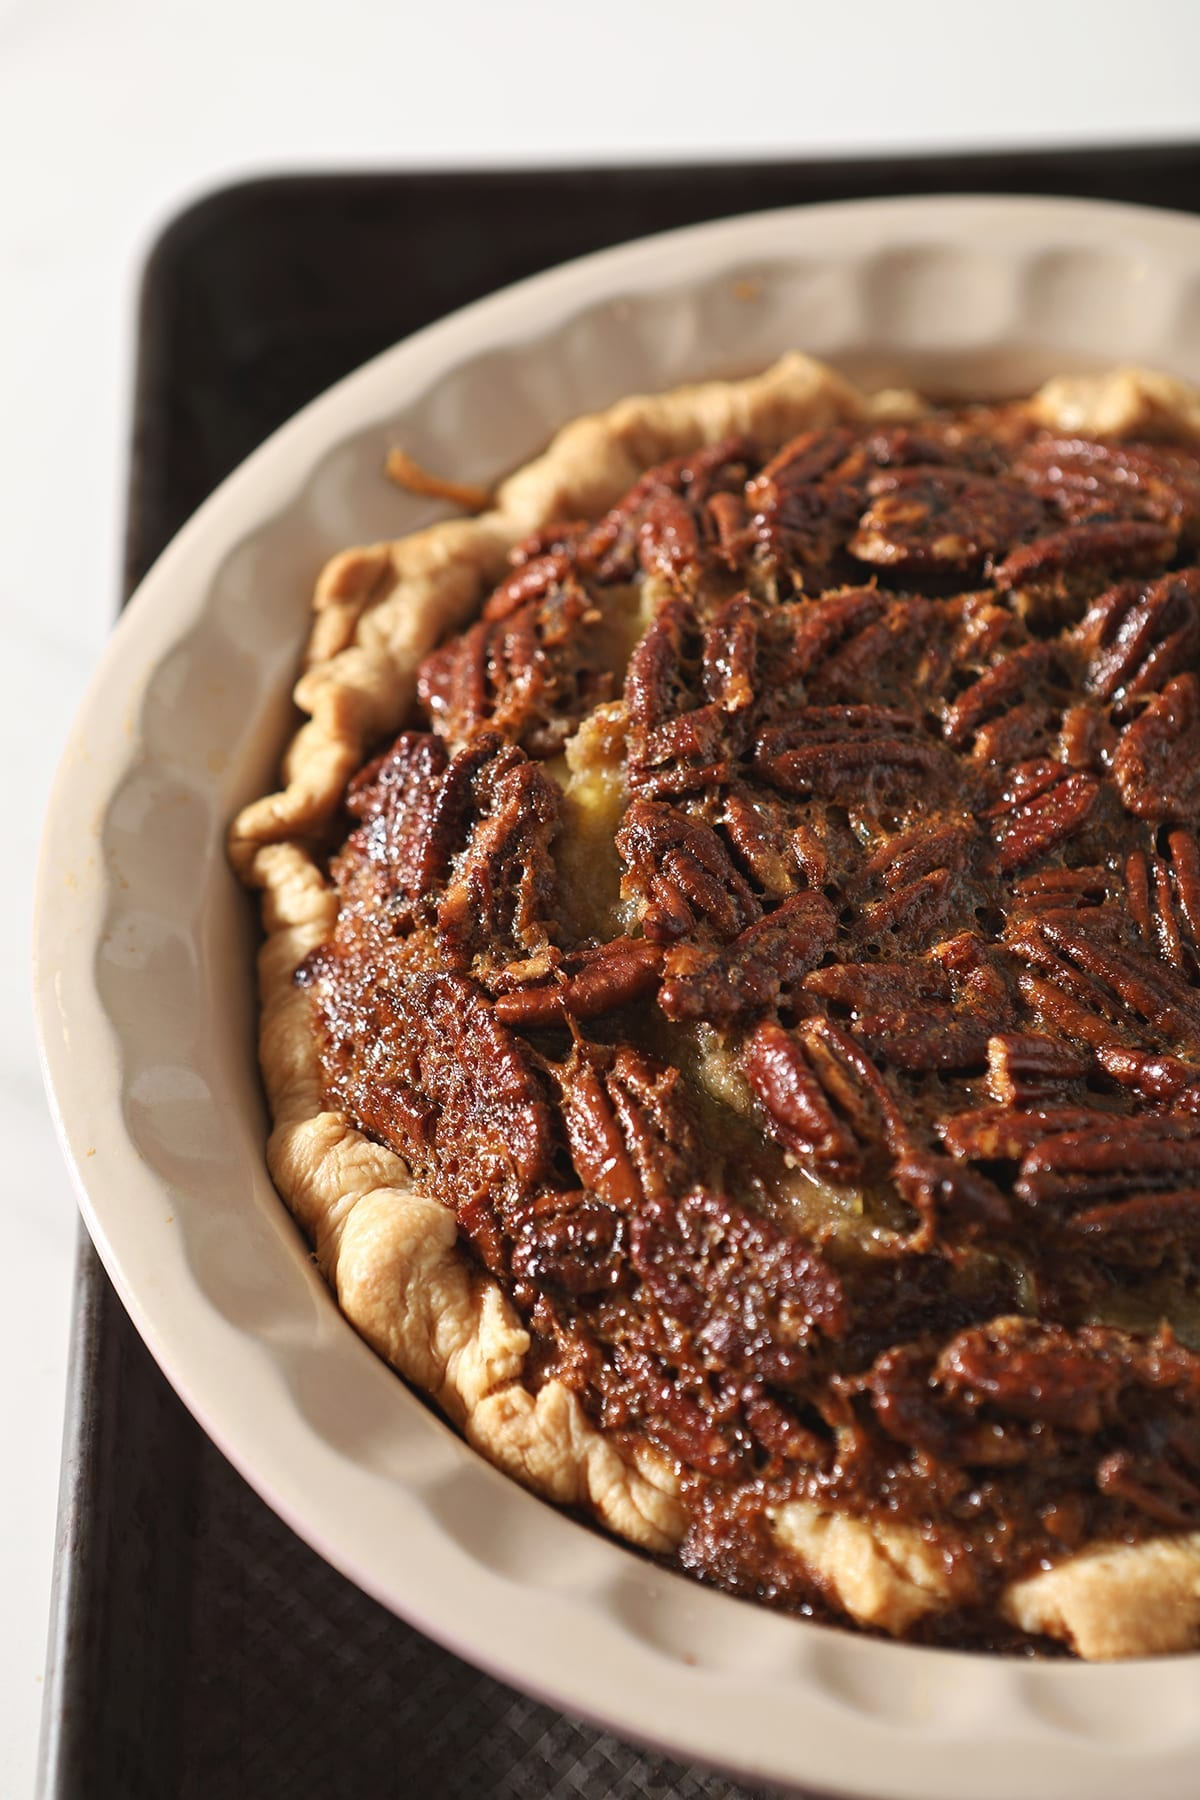 Close up of a Bourbon Pecan Pie on a baking sheet just after baking